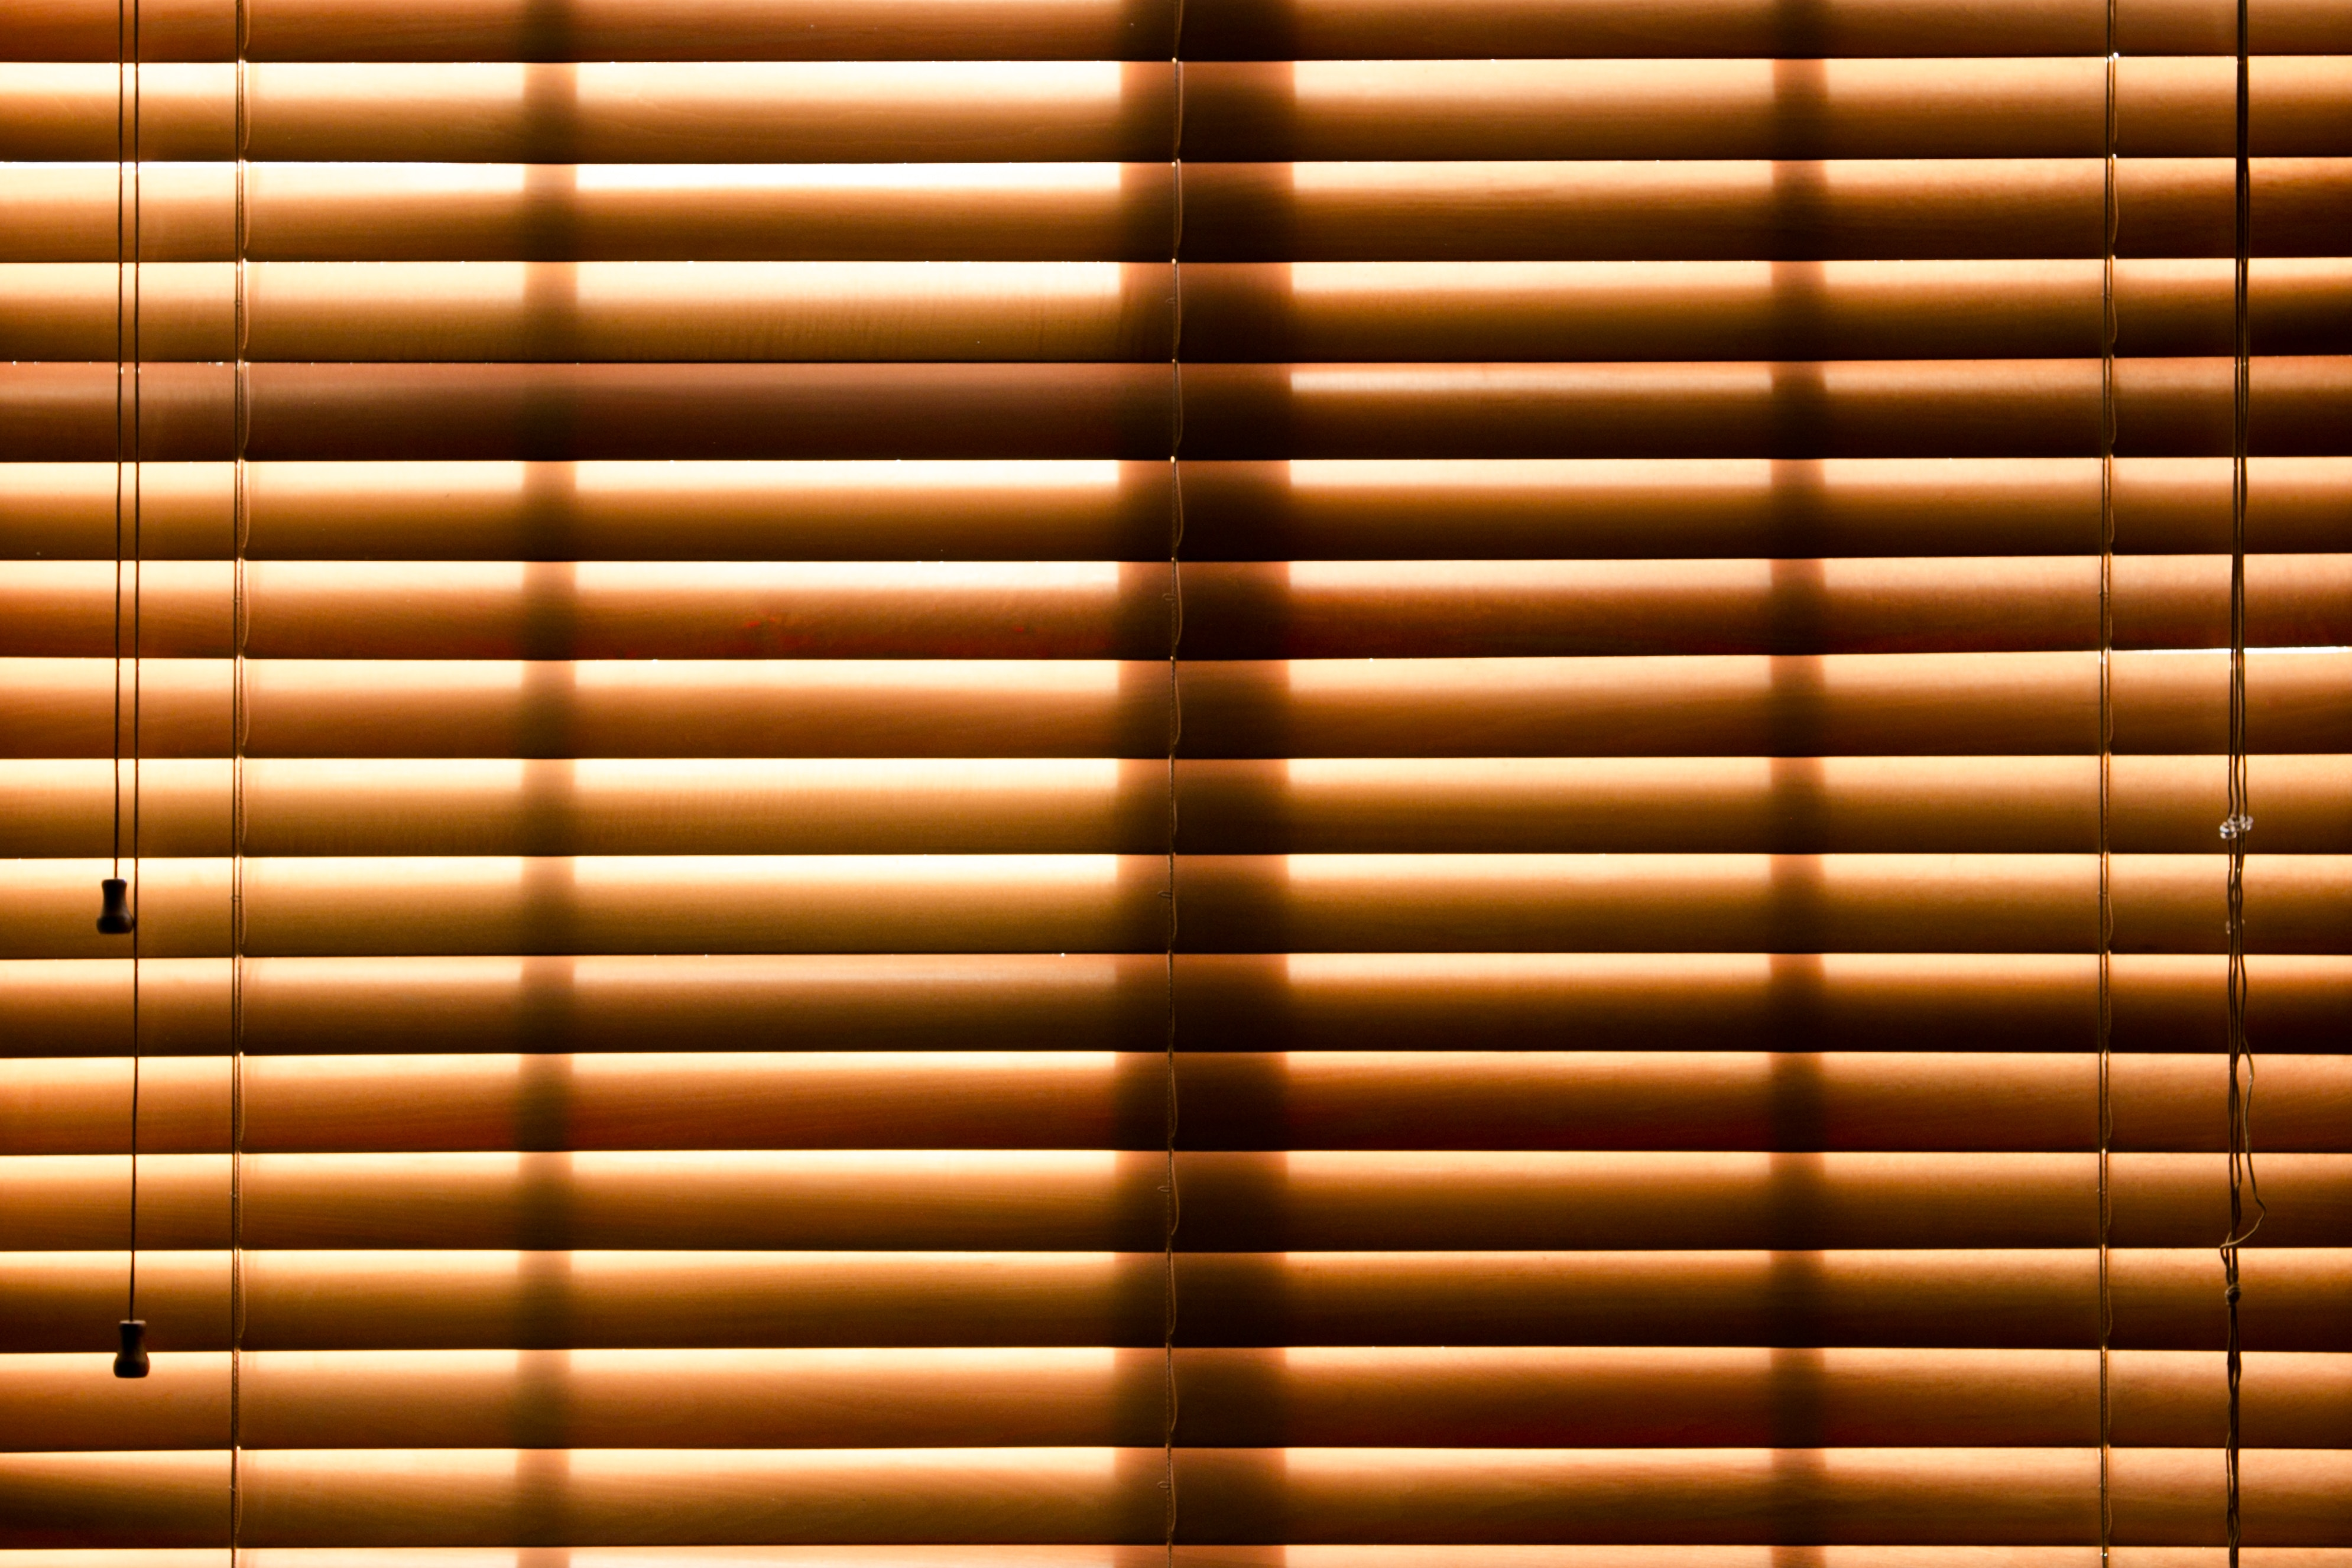 cell blog to how vacuum cellular blinds without ruining touch finishing with dust cleaner them the shades clean